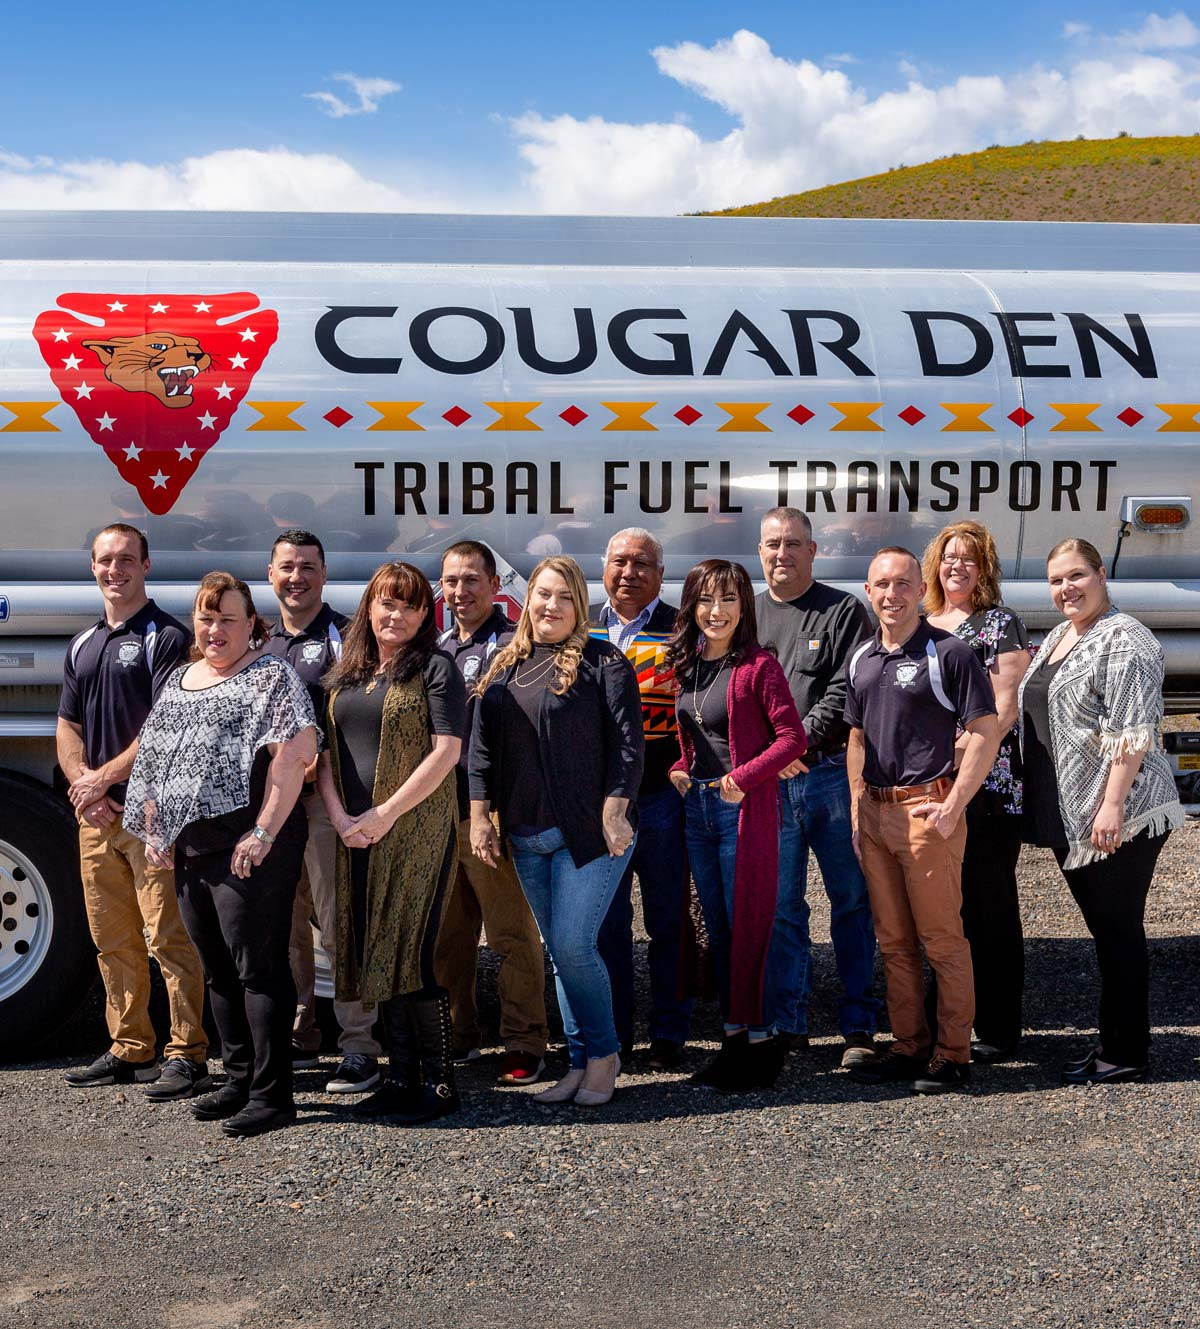 Cougar Den employees in front of Cougar Den fuel tank